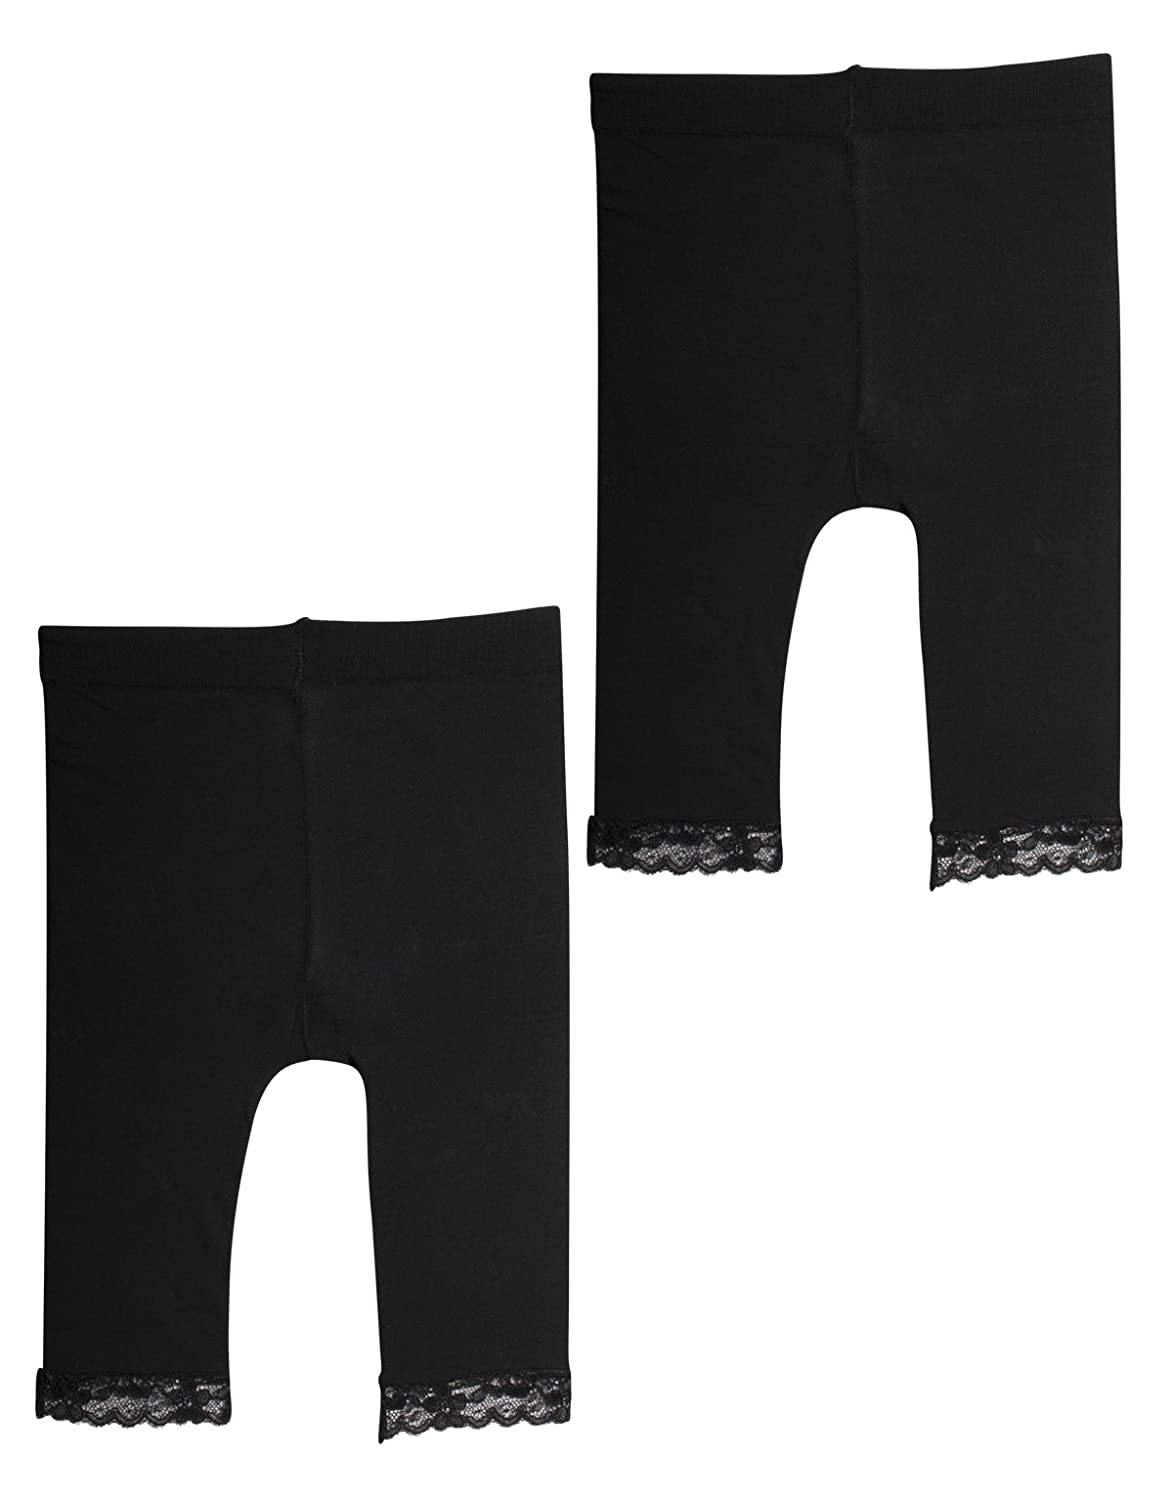 2 PAIRS II LEGGINGS BABY GIRL WITH LACE | NEWBORN TRAUSERS IN MICROFIBRE | 50 DEN | BLACK, WHITE | 12, 18, 24, MONTHS | MADE IN ITALY | 08291X2